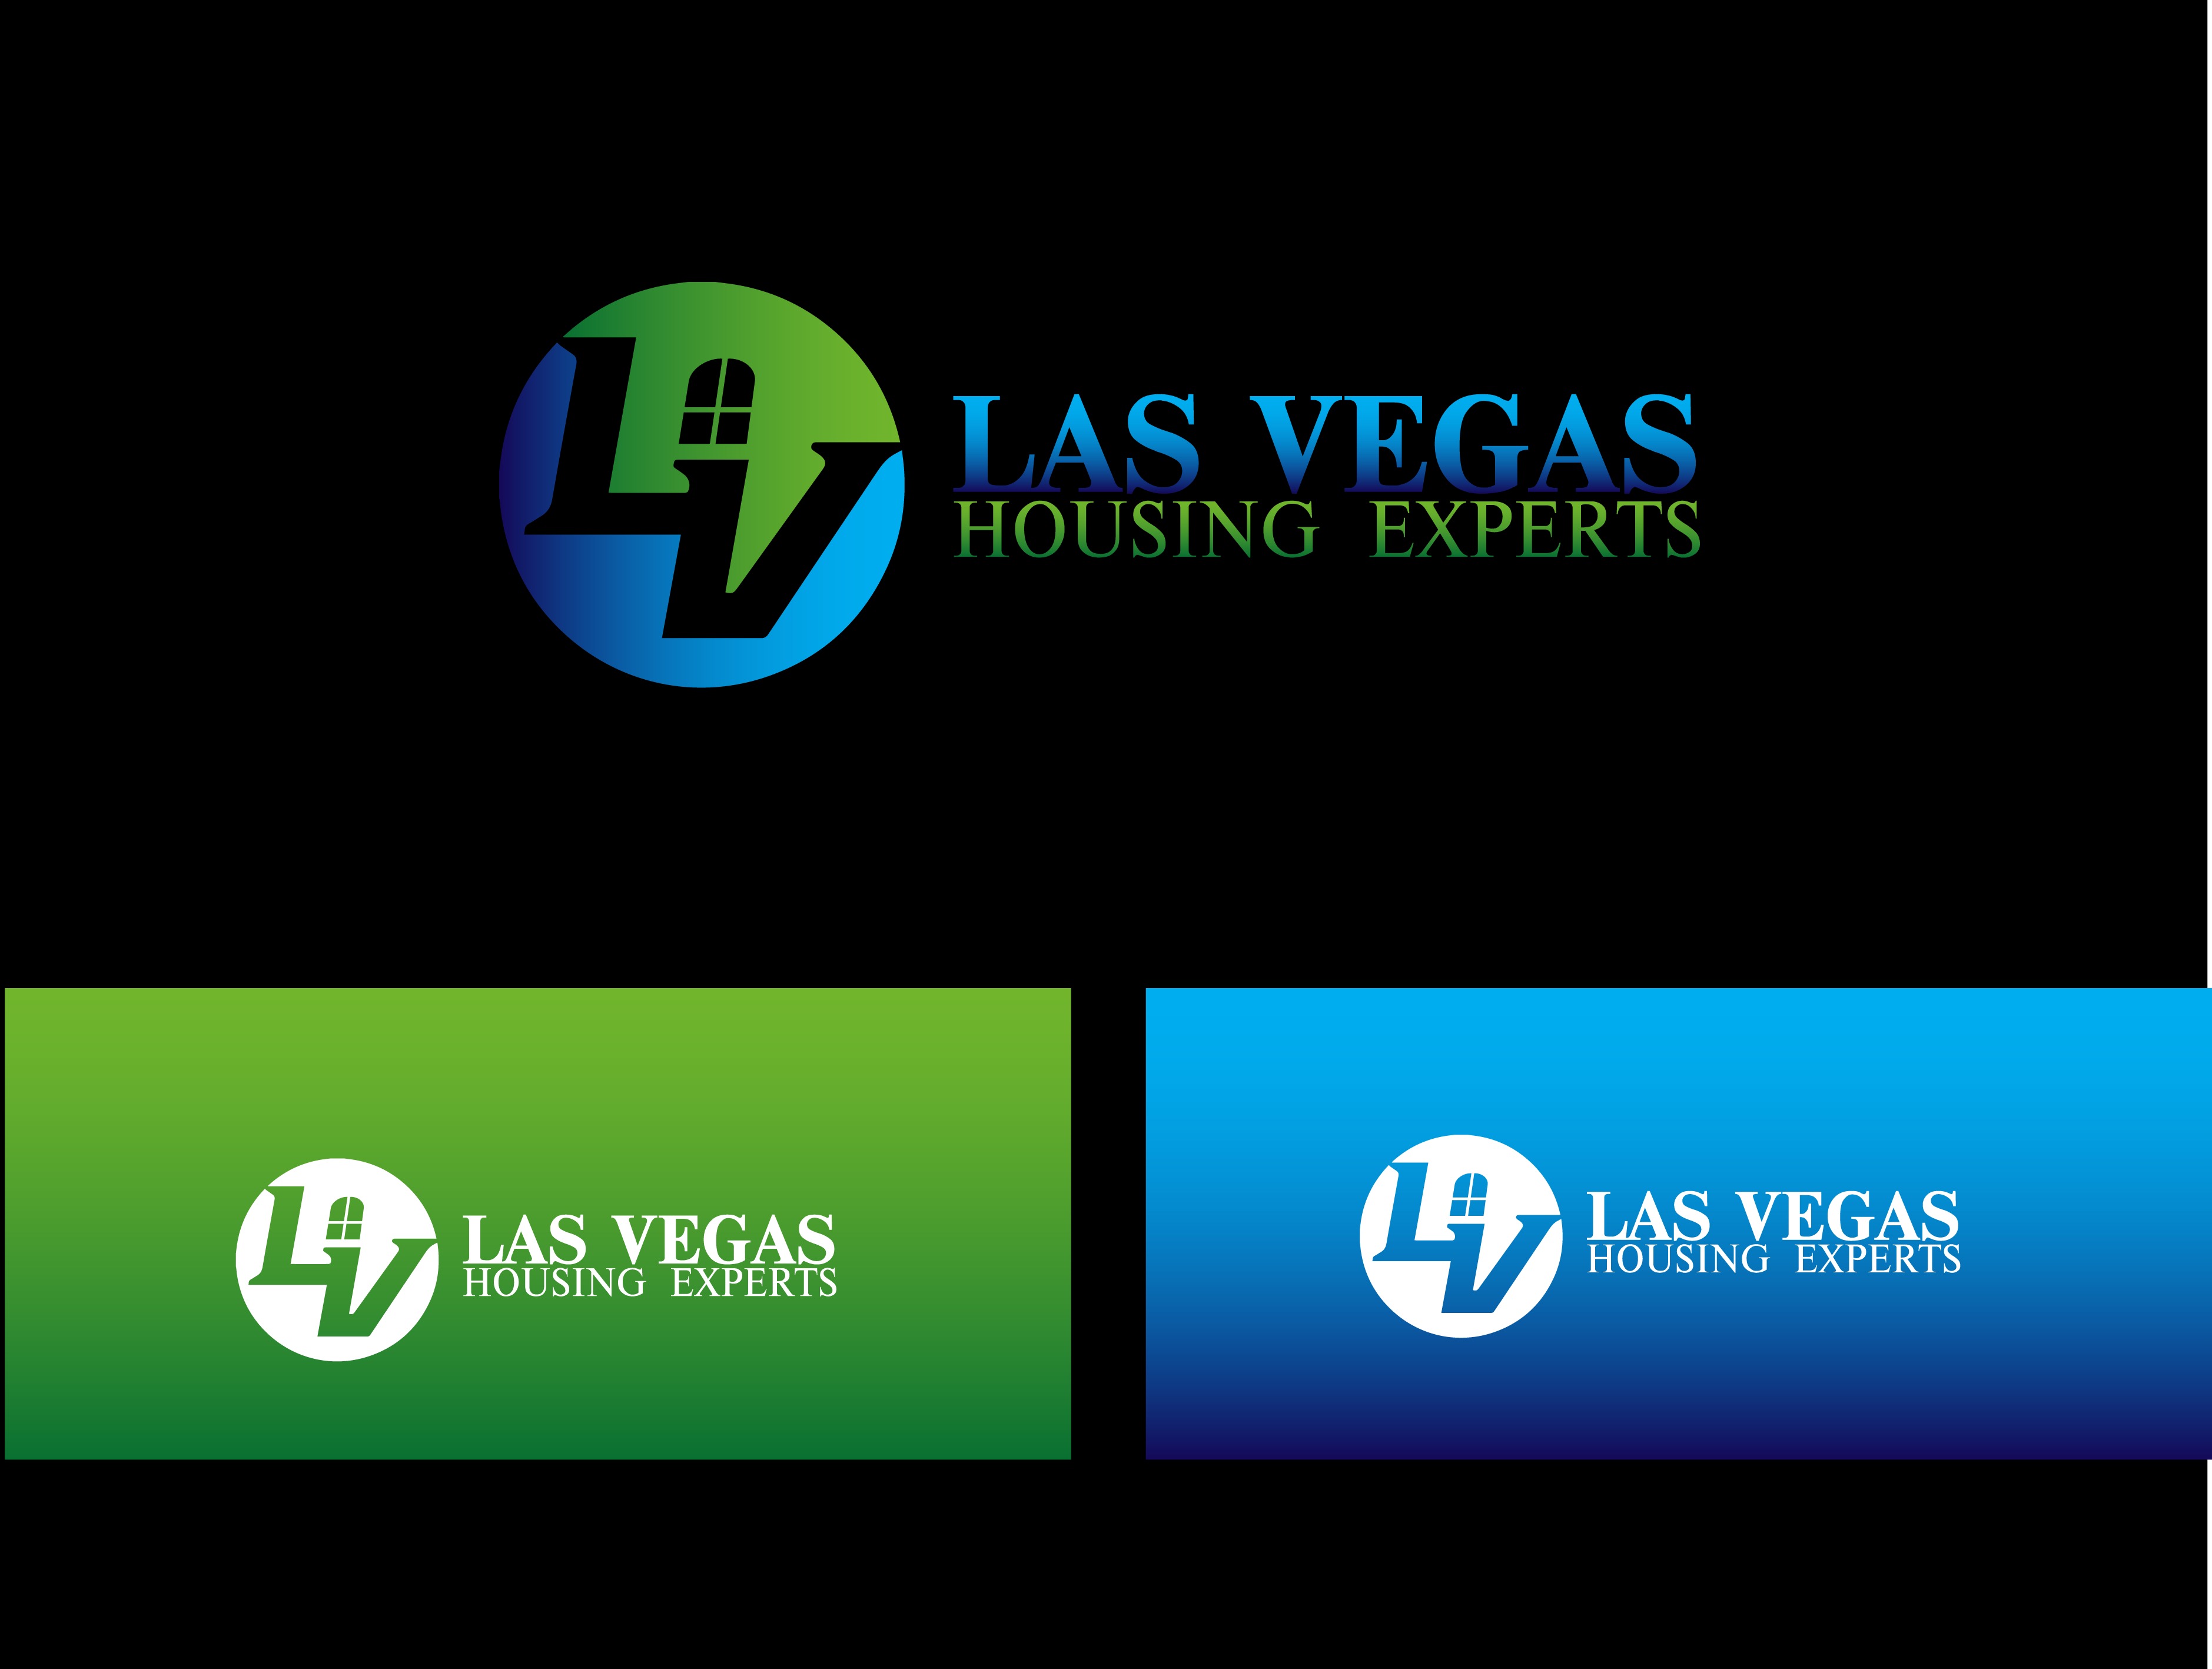 Logo Design by Private User - Entry No. 64 in the Logo Design Contest Las Vegas Housing Experts Logo Design.